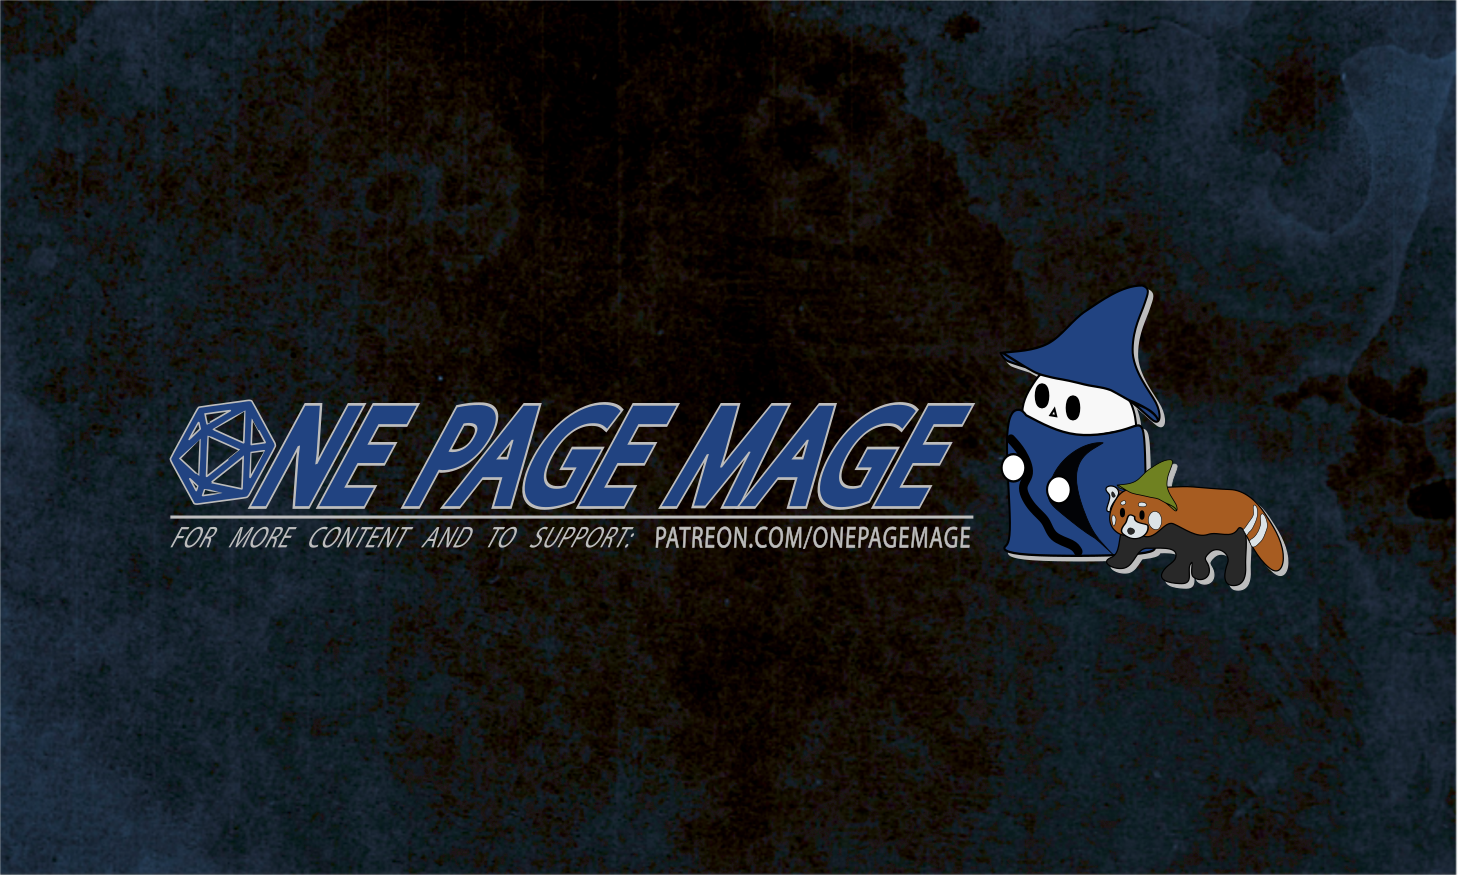 One Page Mage